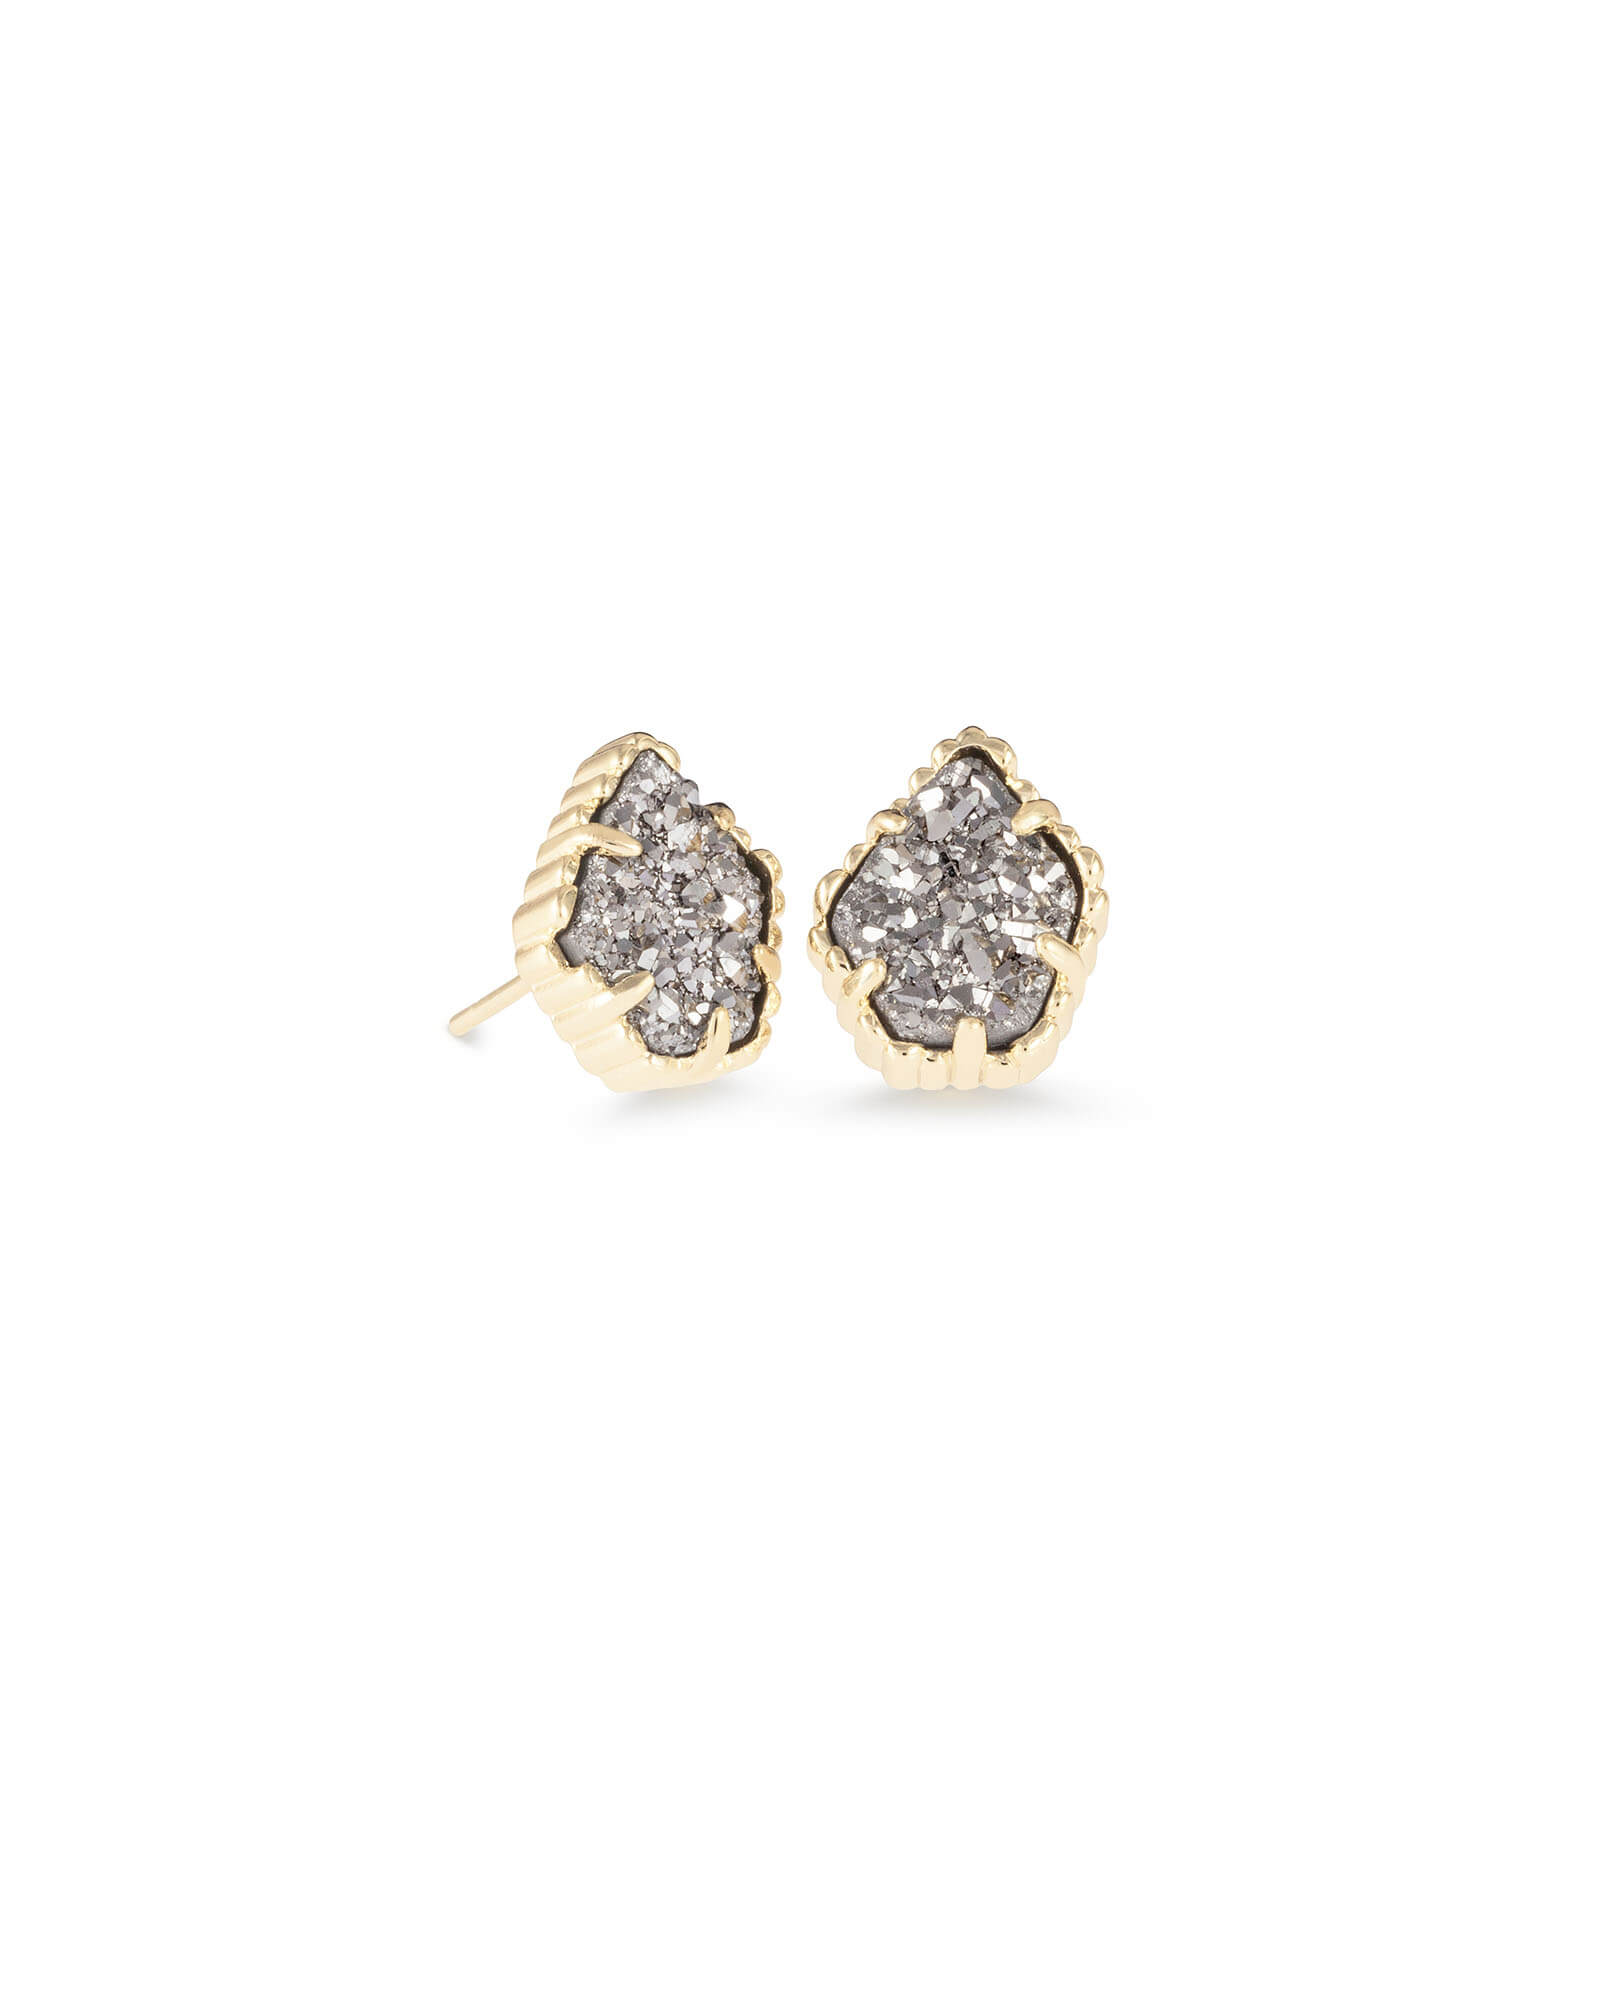 Tessa Stud Earrings in Gold